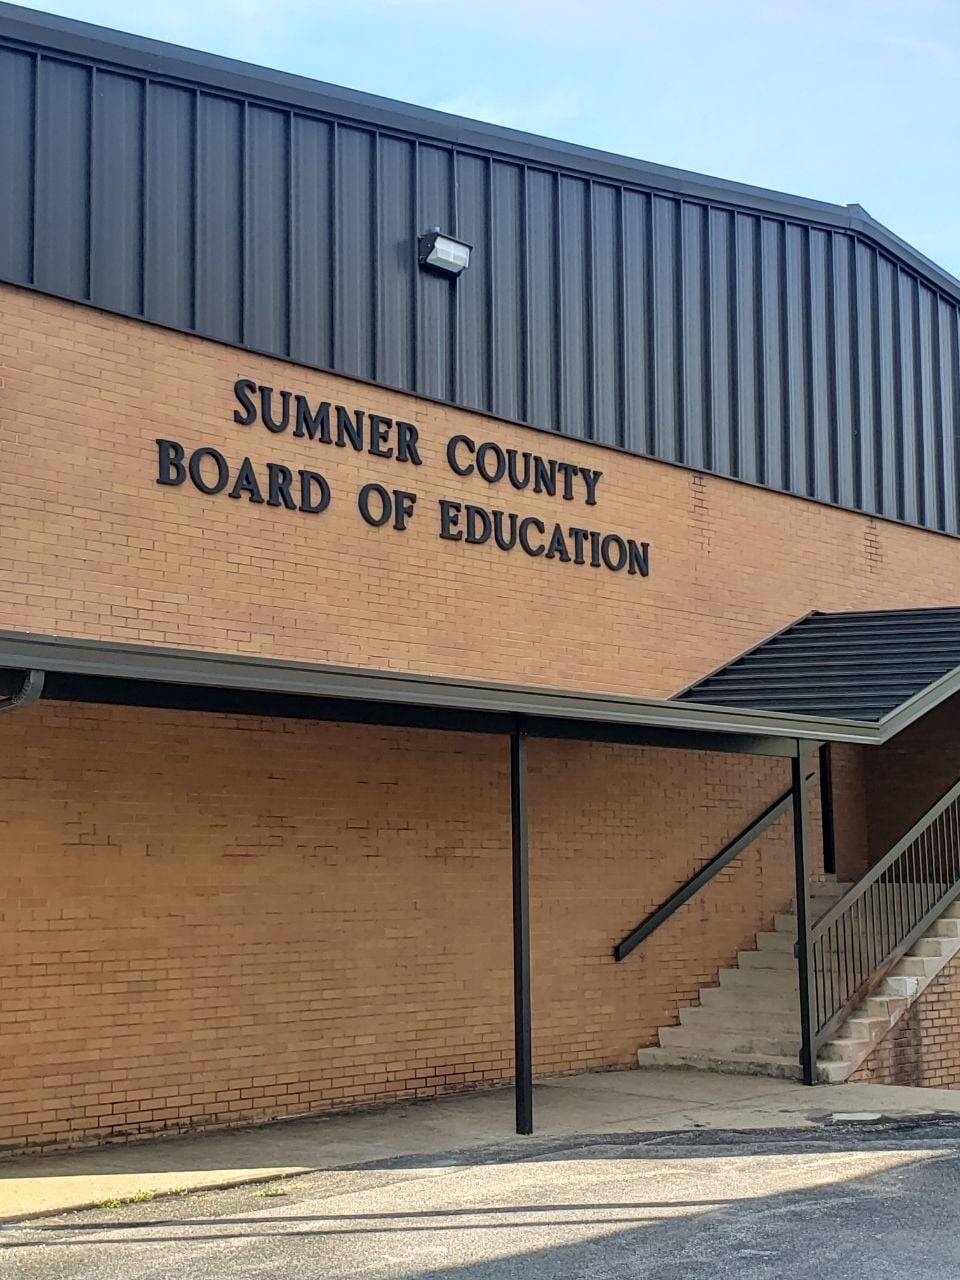 Absolute Flooring Inc has worked with the Sumner County Board of Education